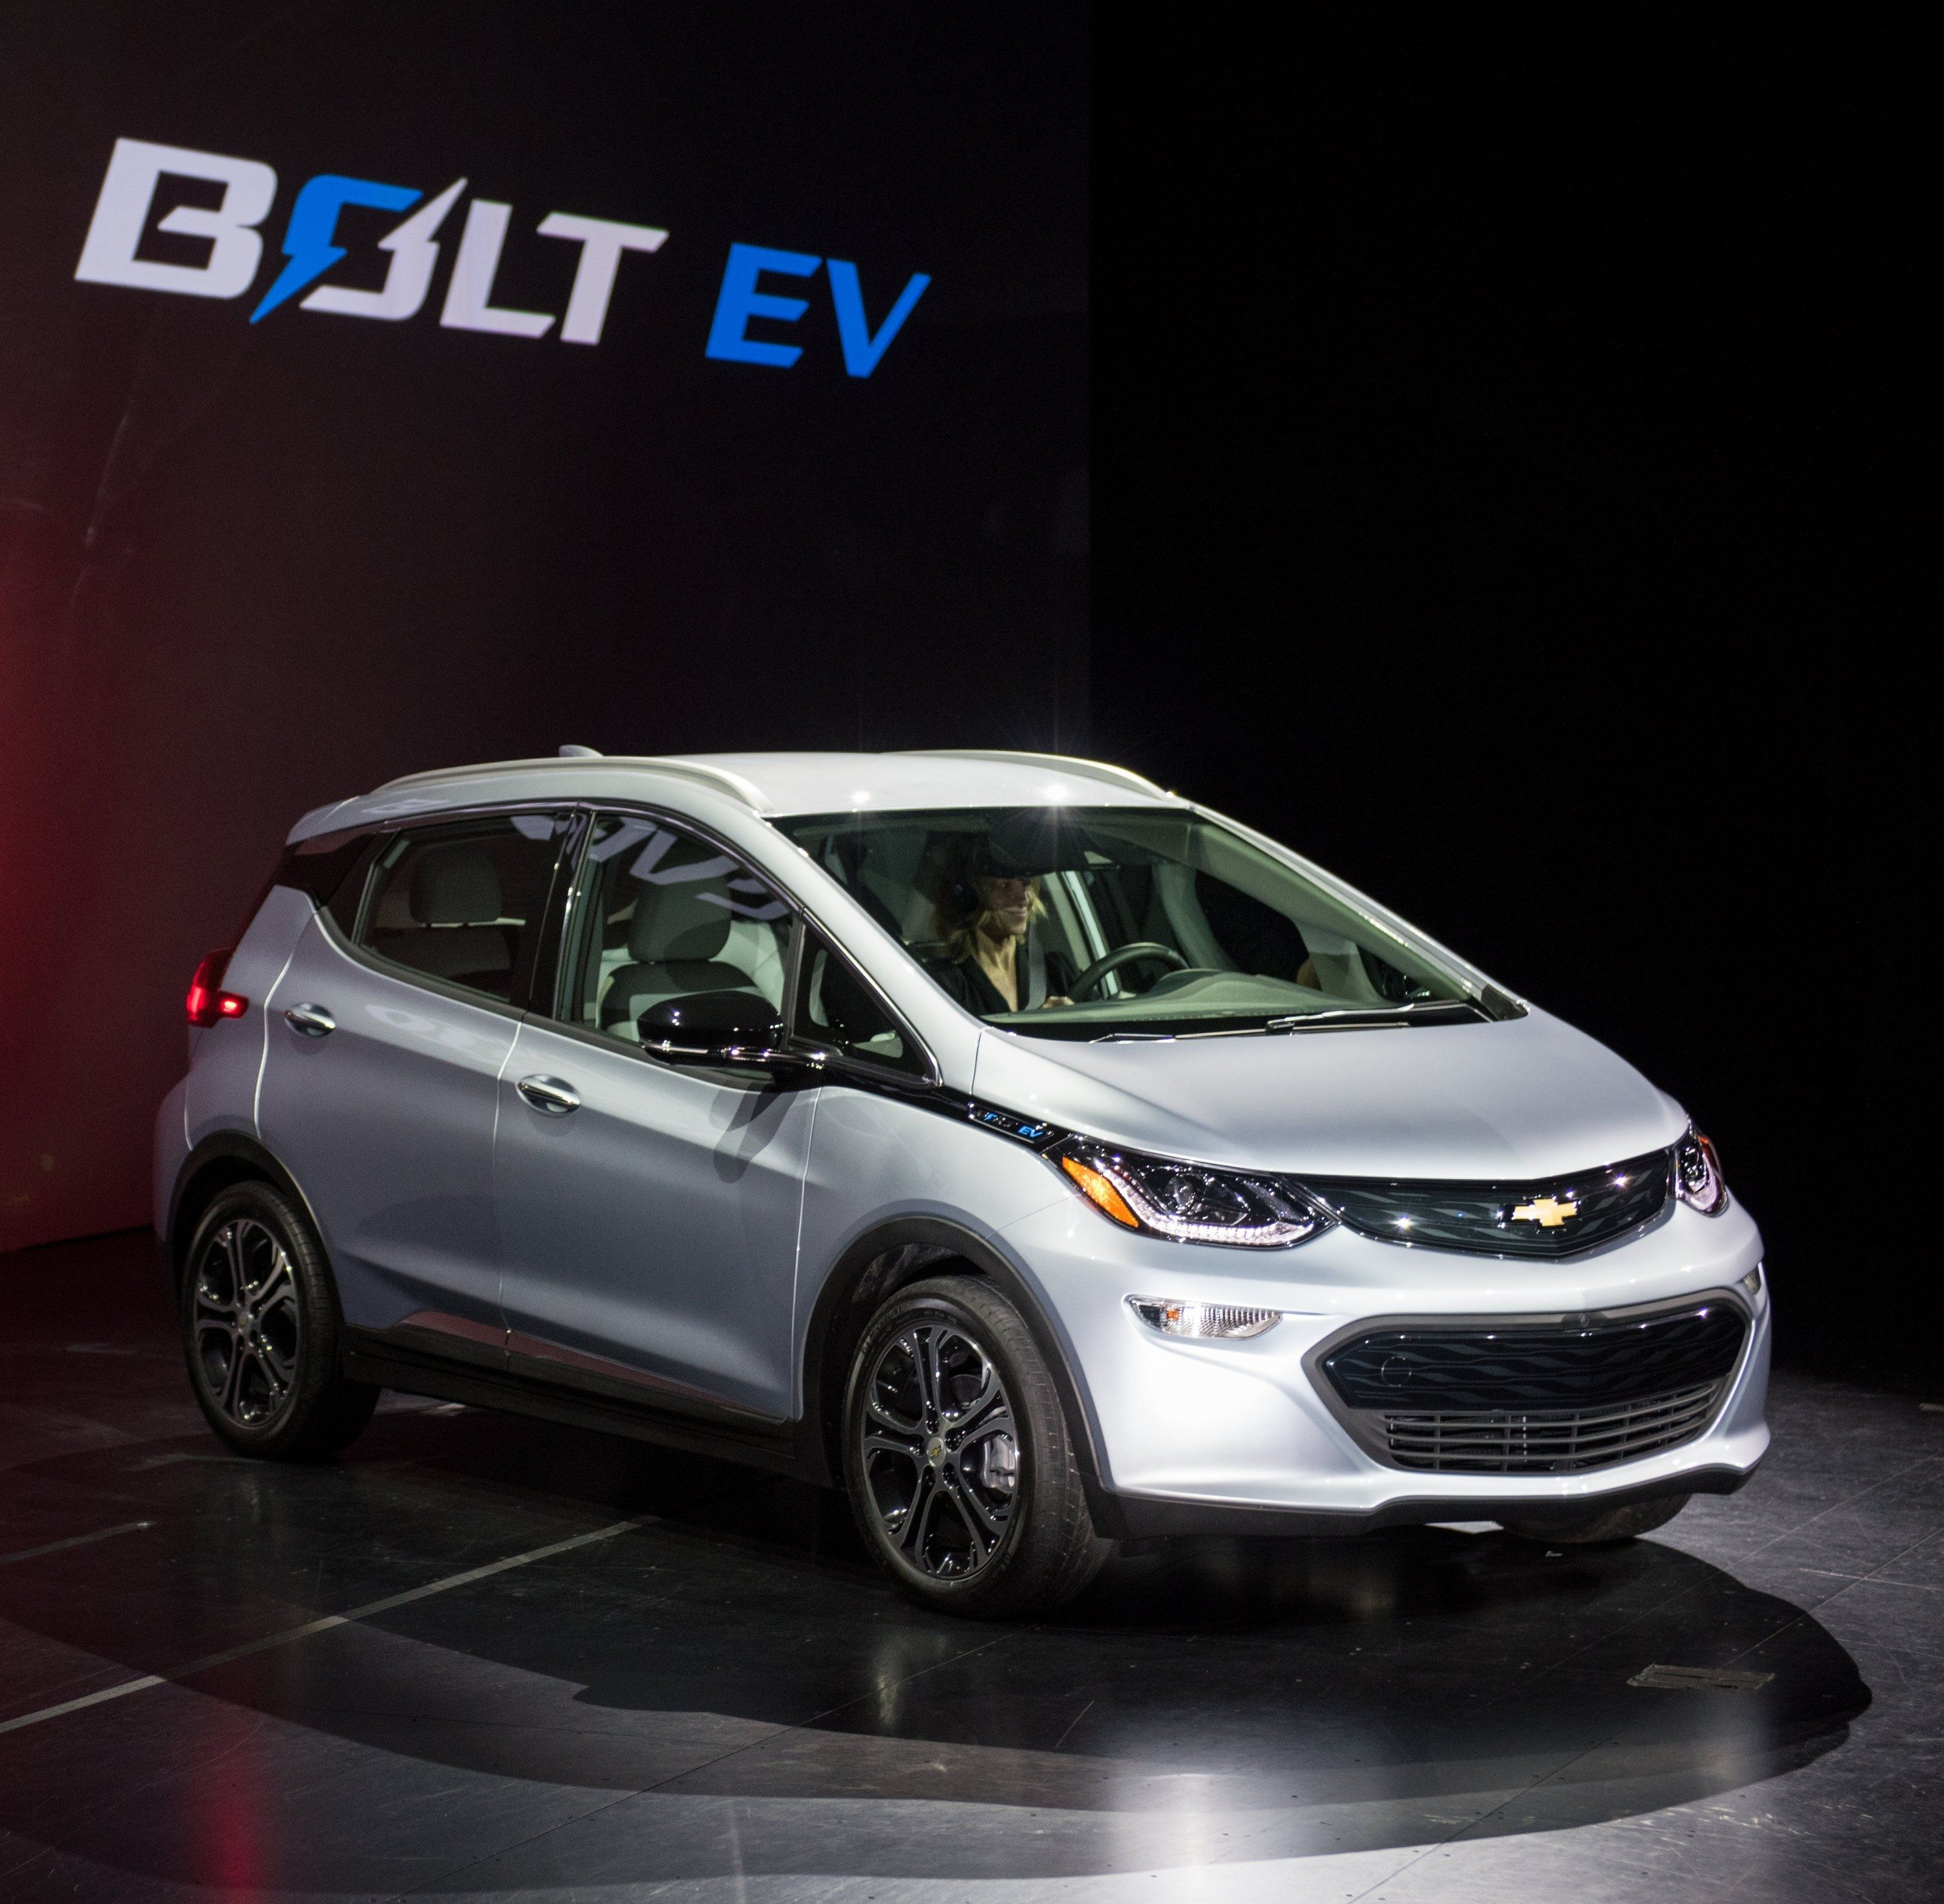 When Will 2020 Chevrolet Bolt Manual Be Released